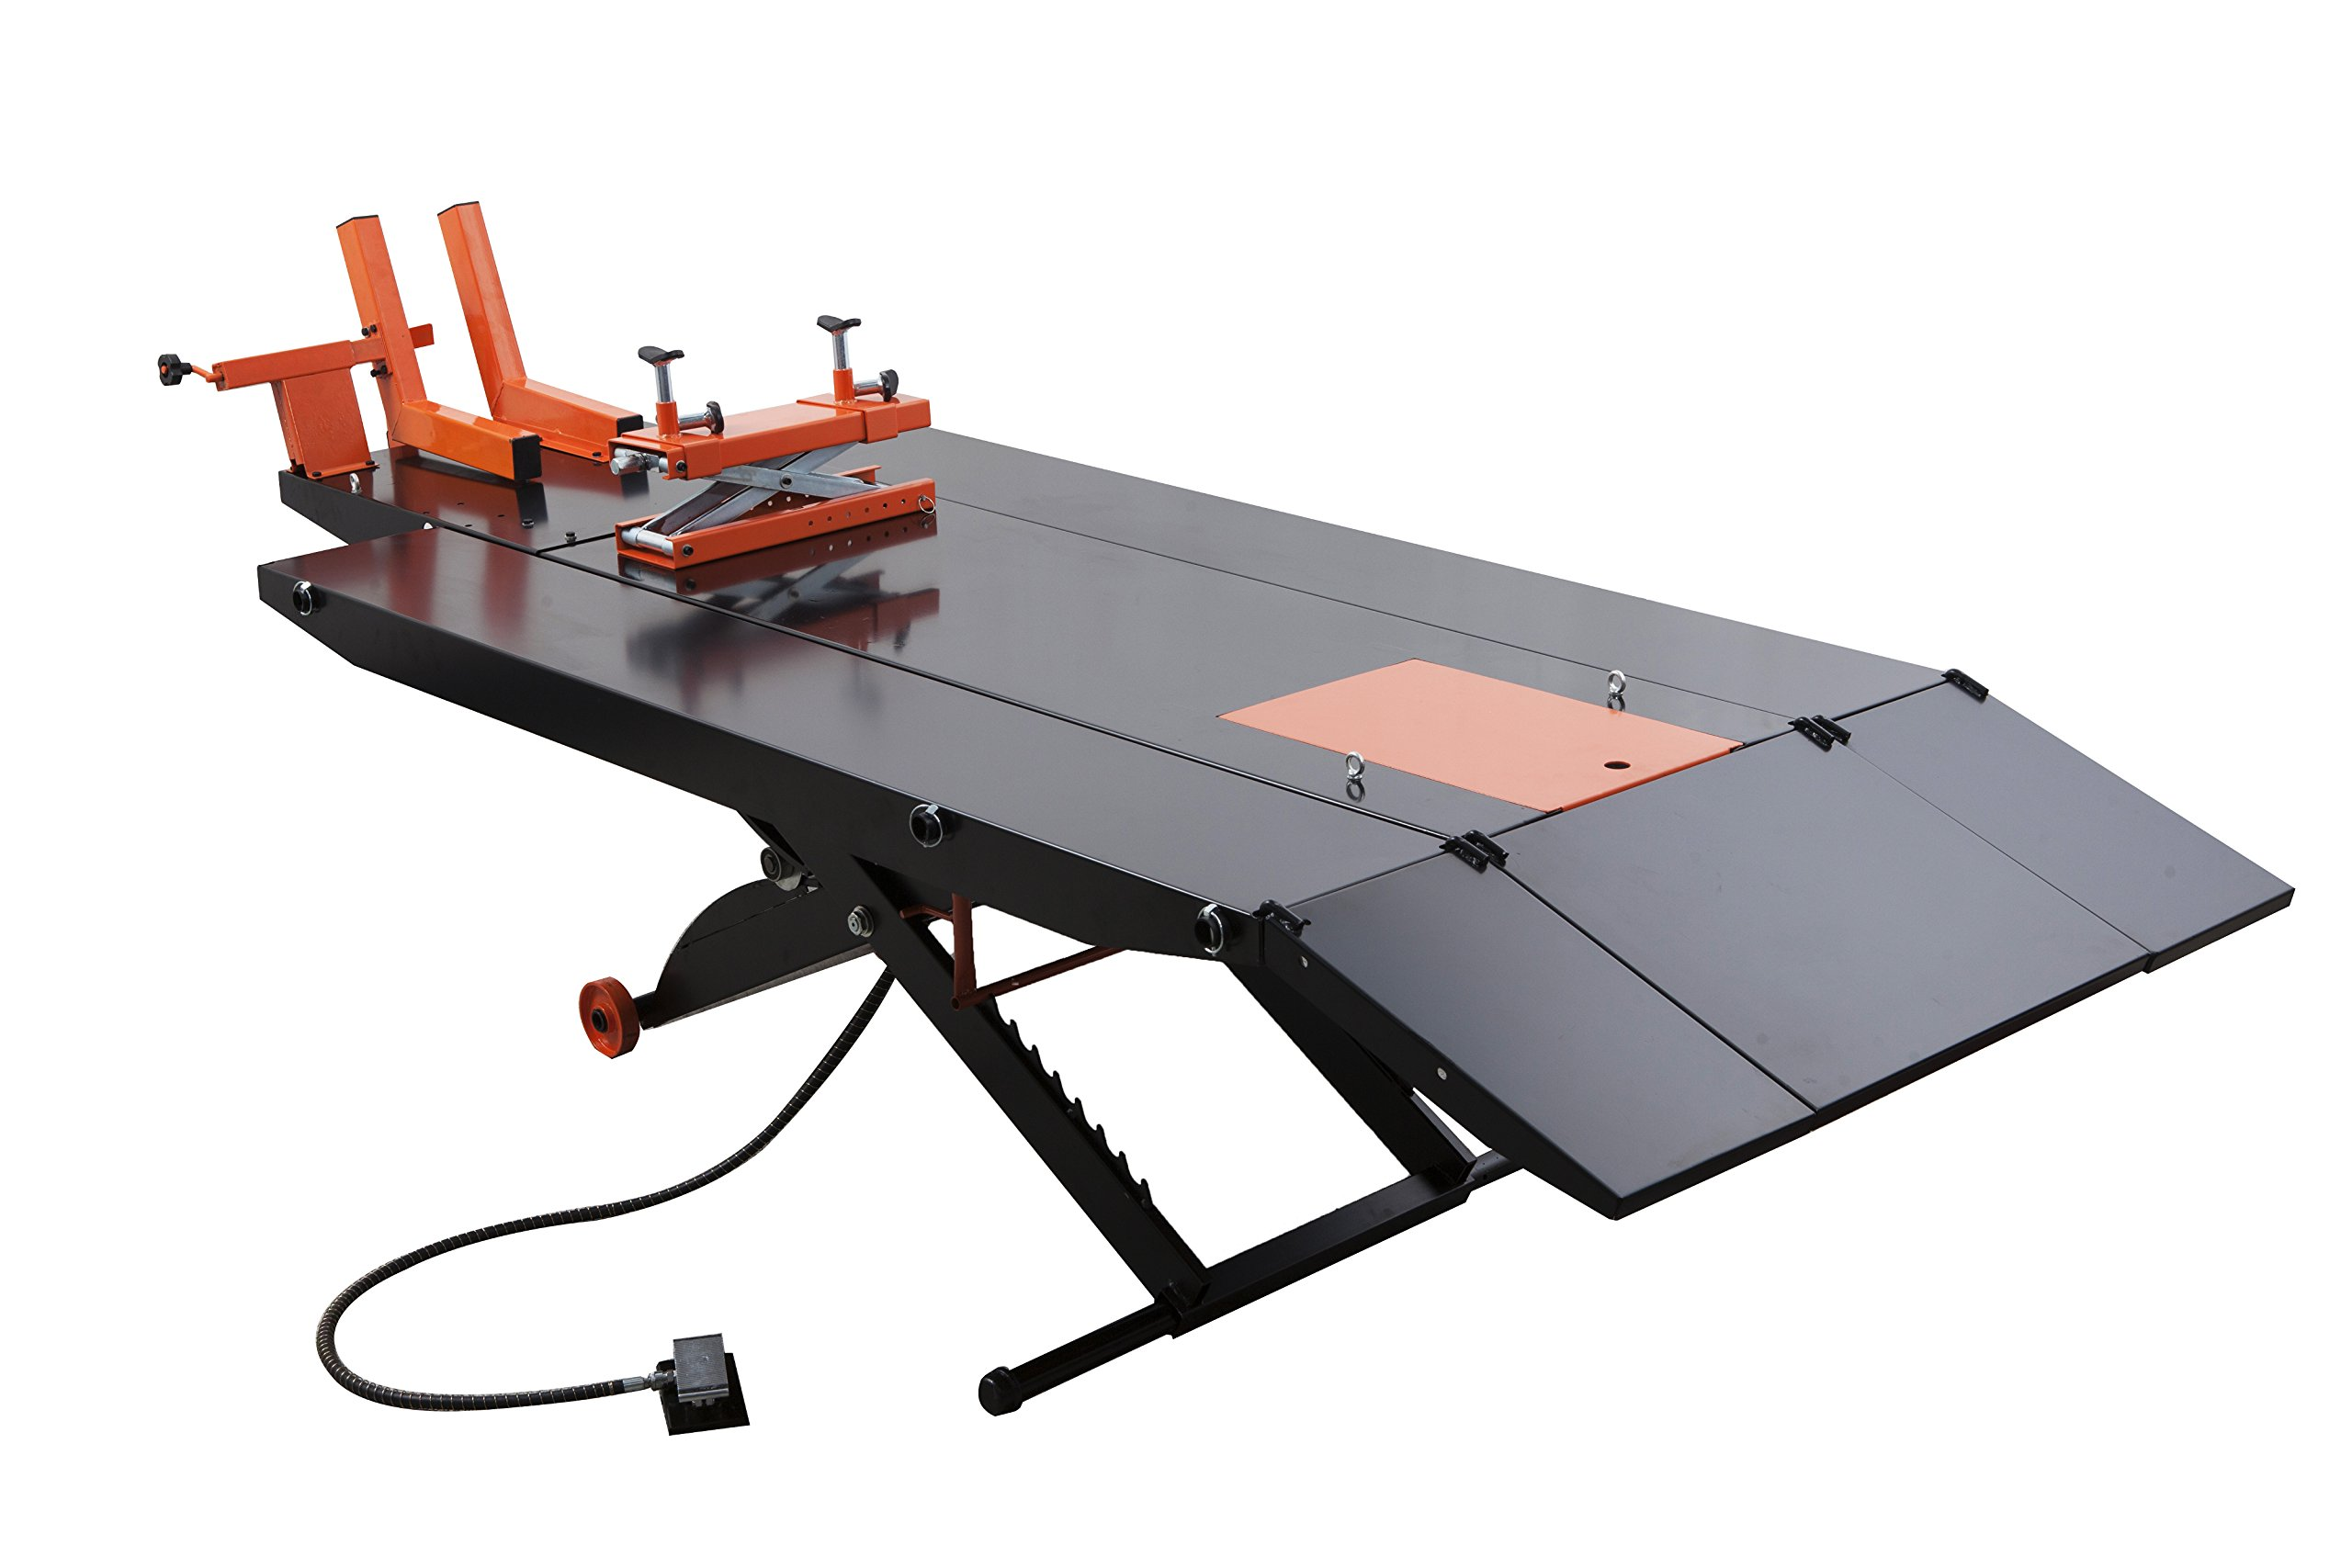 APlusLift 1500LB Air Operated 48'' Width ATV Motorcycle Lift Table with Side Extensions (Free Service Jack, Free Home Delivery)